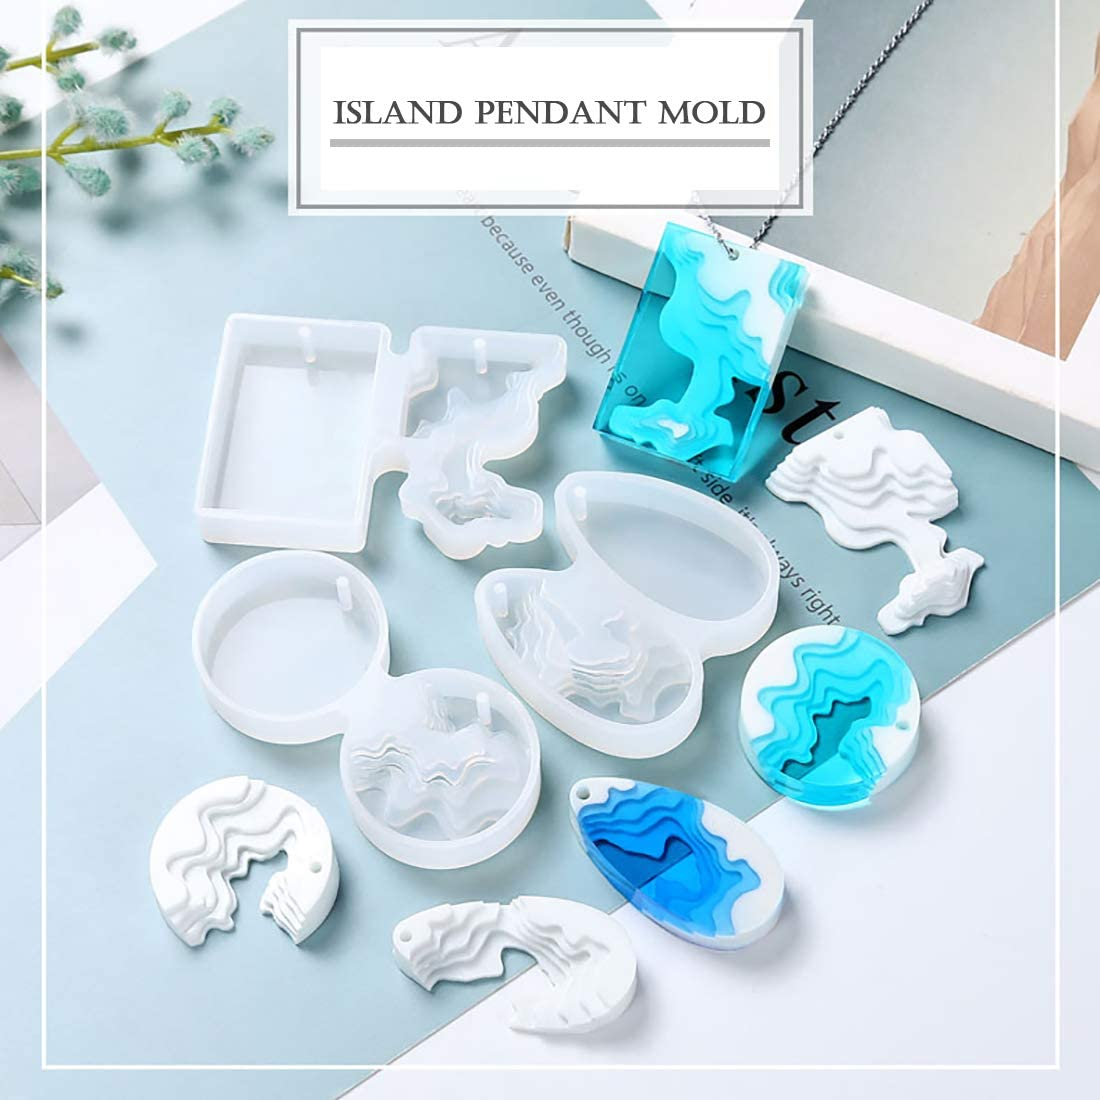 FineInno 3Pcs Island Resin Moulds Ocean Themed Silicone Moulds for Resin for Jewellery Making Silicone Pendant Molds with Holes DIY Resin Jewelry Island Resin Moulds